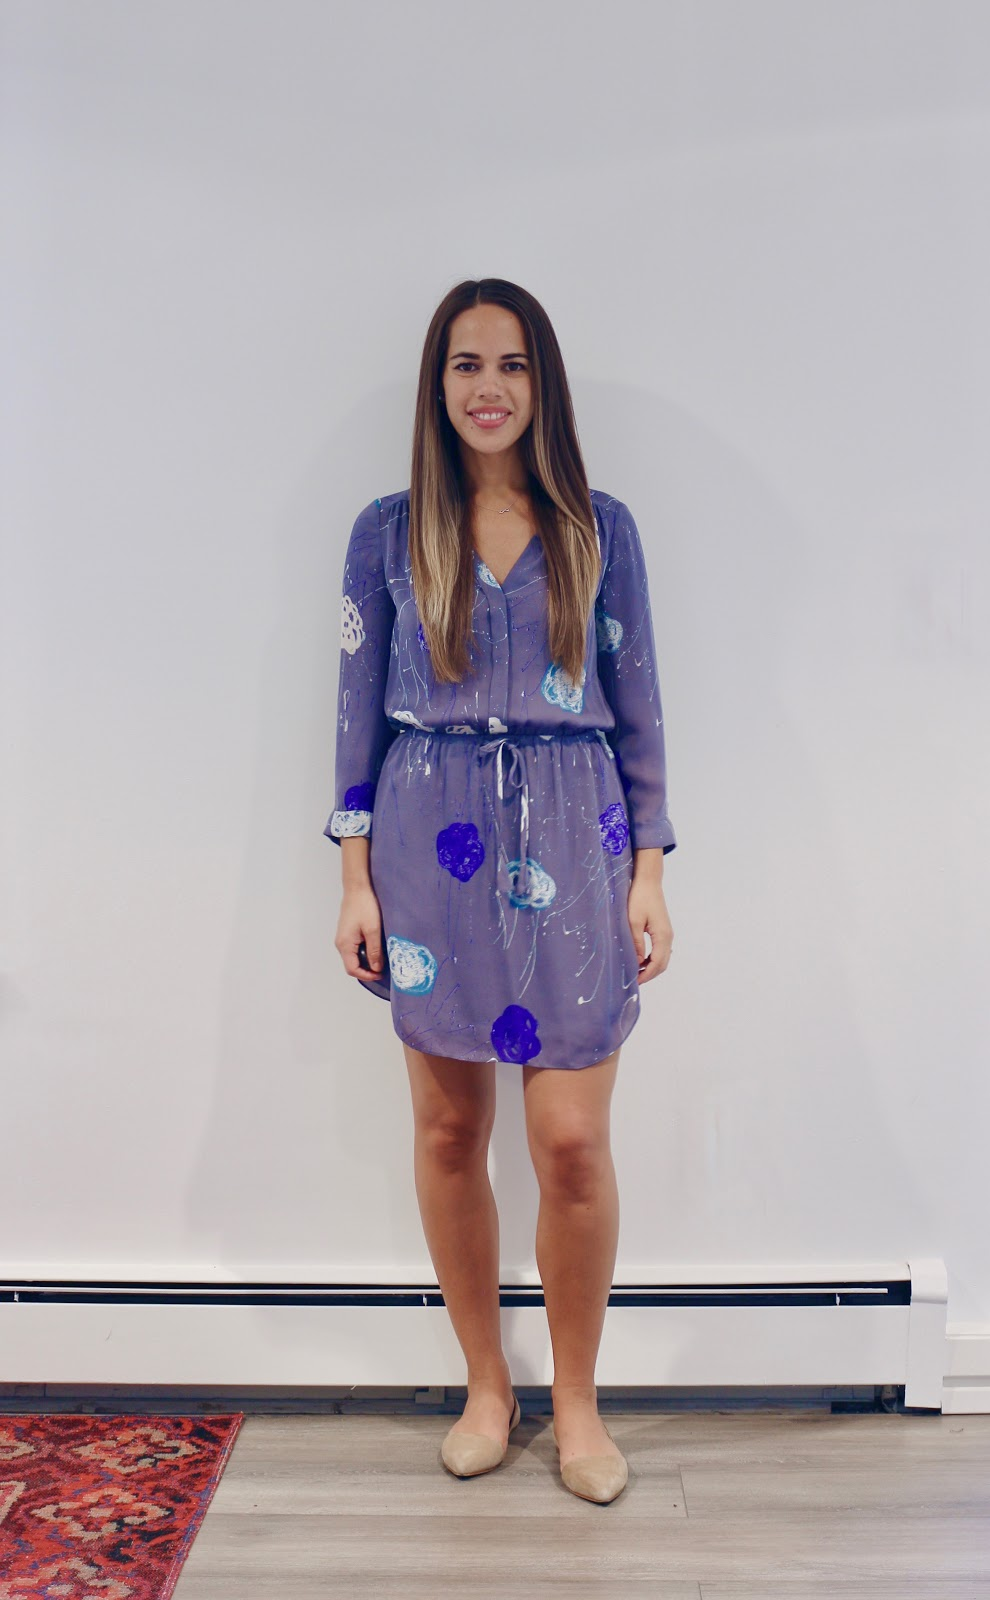 Jules in Flats -  Babaton Bennett Silk Shirt Dress (Business Casual Summer Workwear on a Budget)